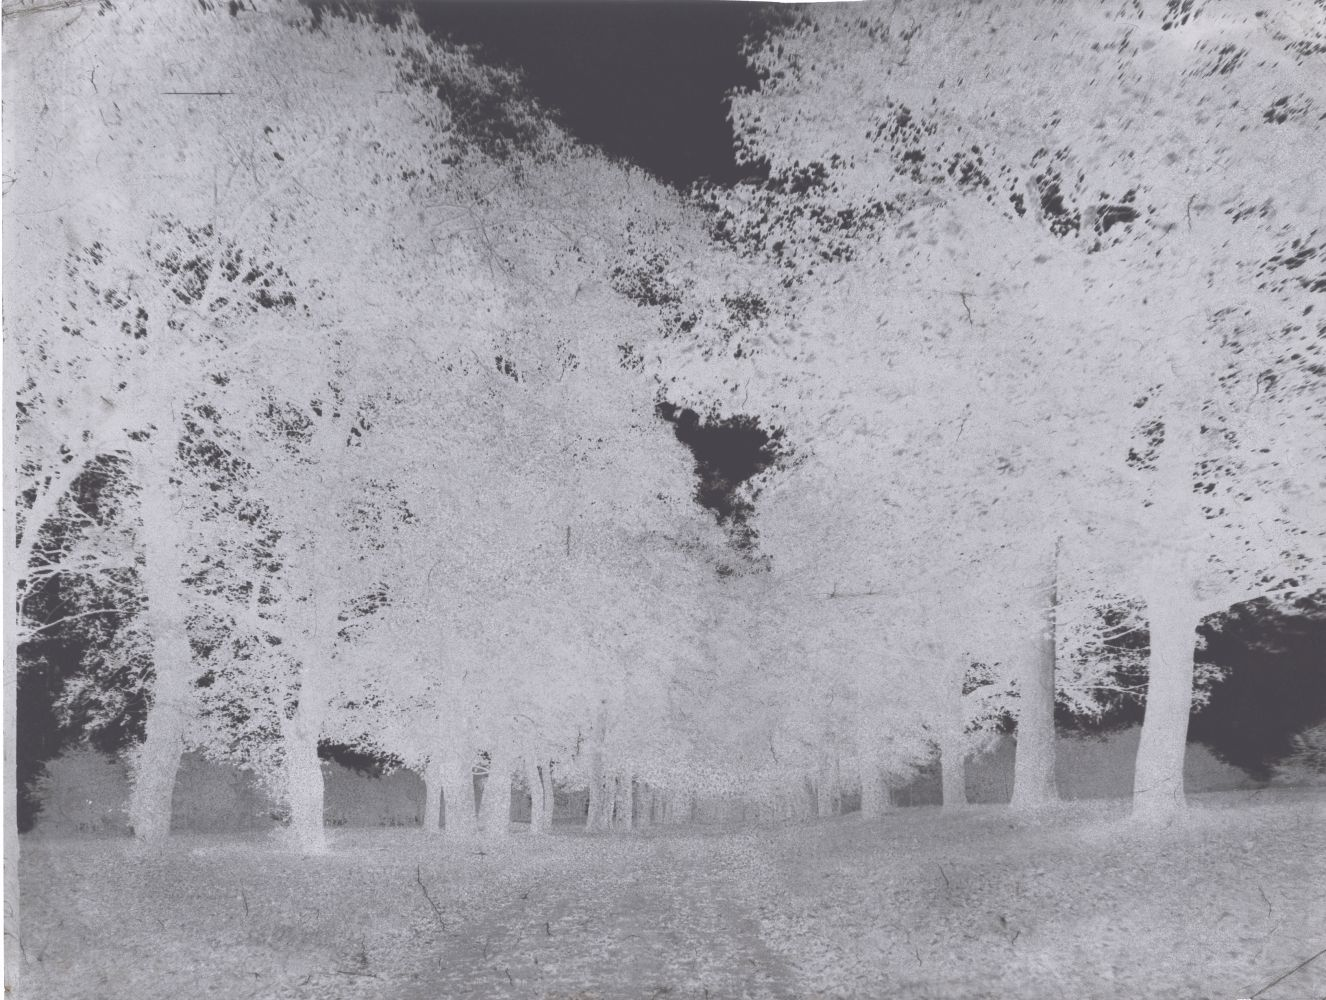 Attributed to Dr. Thomas KEITH (Scottish, 1827-1895) Avenue of trees, Arniston House, 1853-1856 Waxed paper negative 21.4 x 27.5 cm on 21.4 x 27.8 cm paper